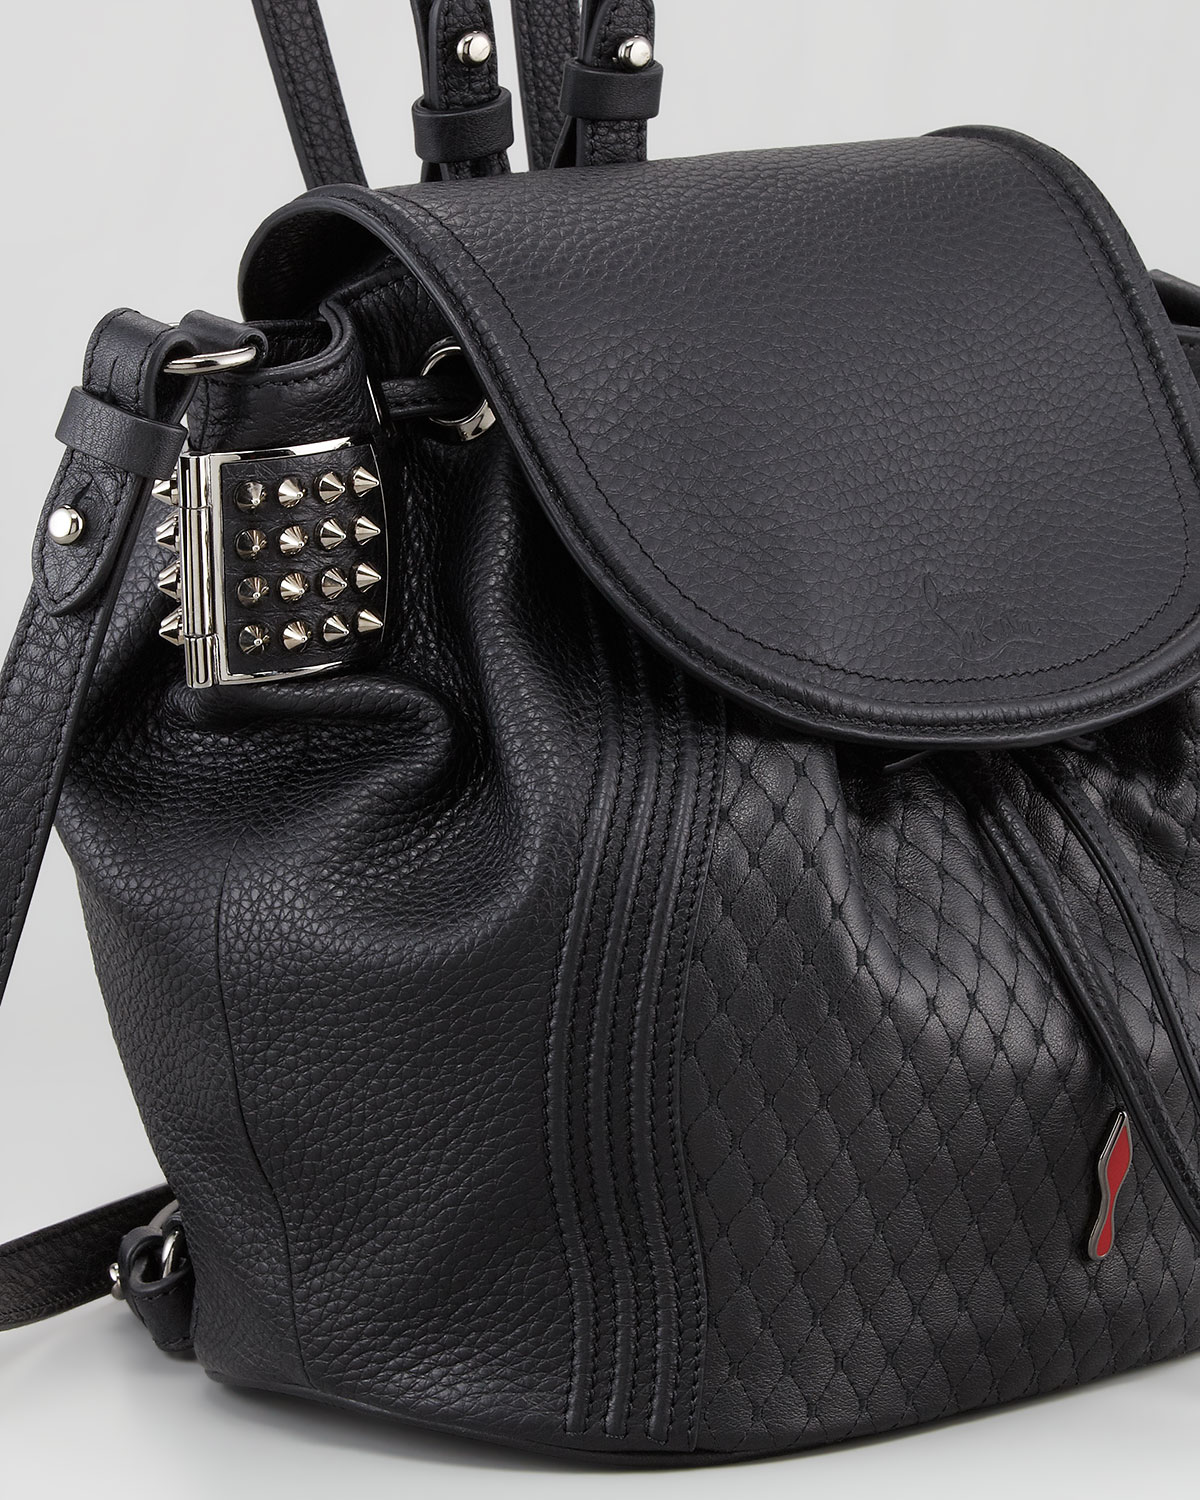 Lyst Christian Louboutin Dompteuse Spiked Backpack